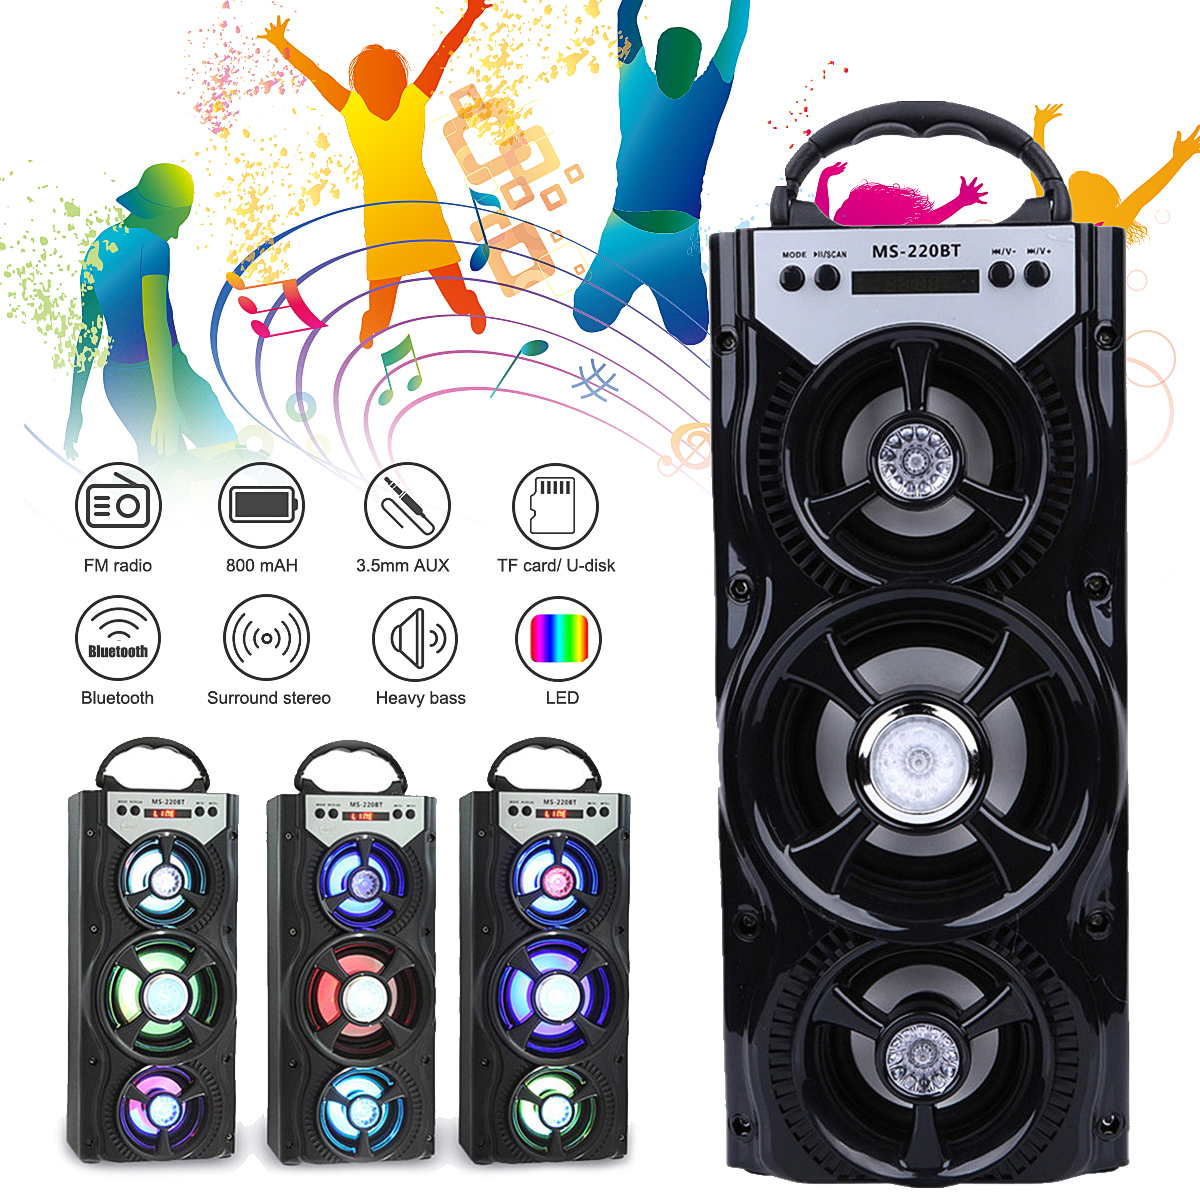 Party Camping Portable Speaker Wireless Bluetooth Speaker Outdoor Music Player Loudspeaker With LED Light FM Radio USB Charging portable wireless bluetooth speaker magic light fm usb micro sd function